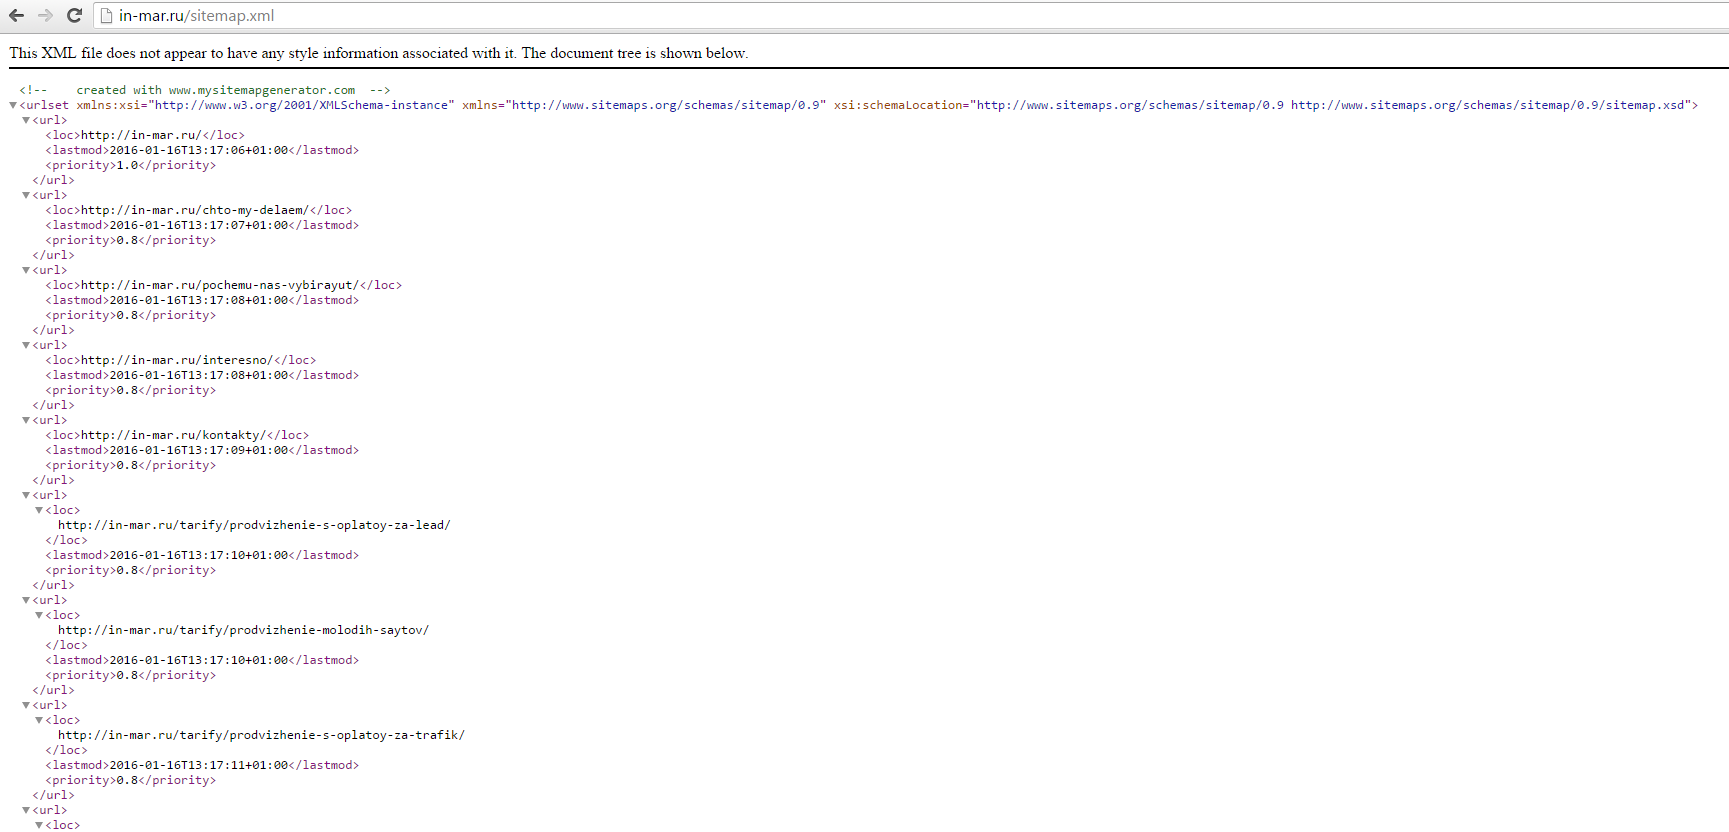 Sitemap.xml for search engine promotion site in Yandex